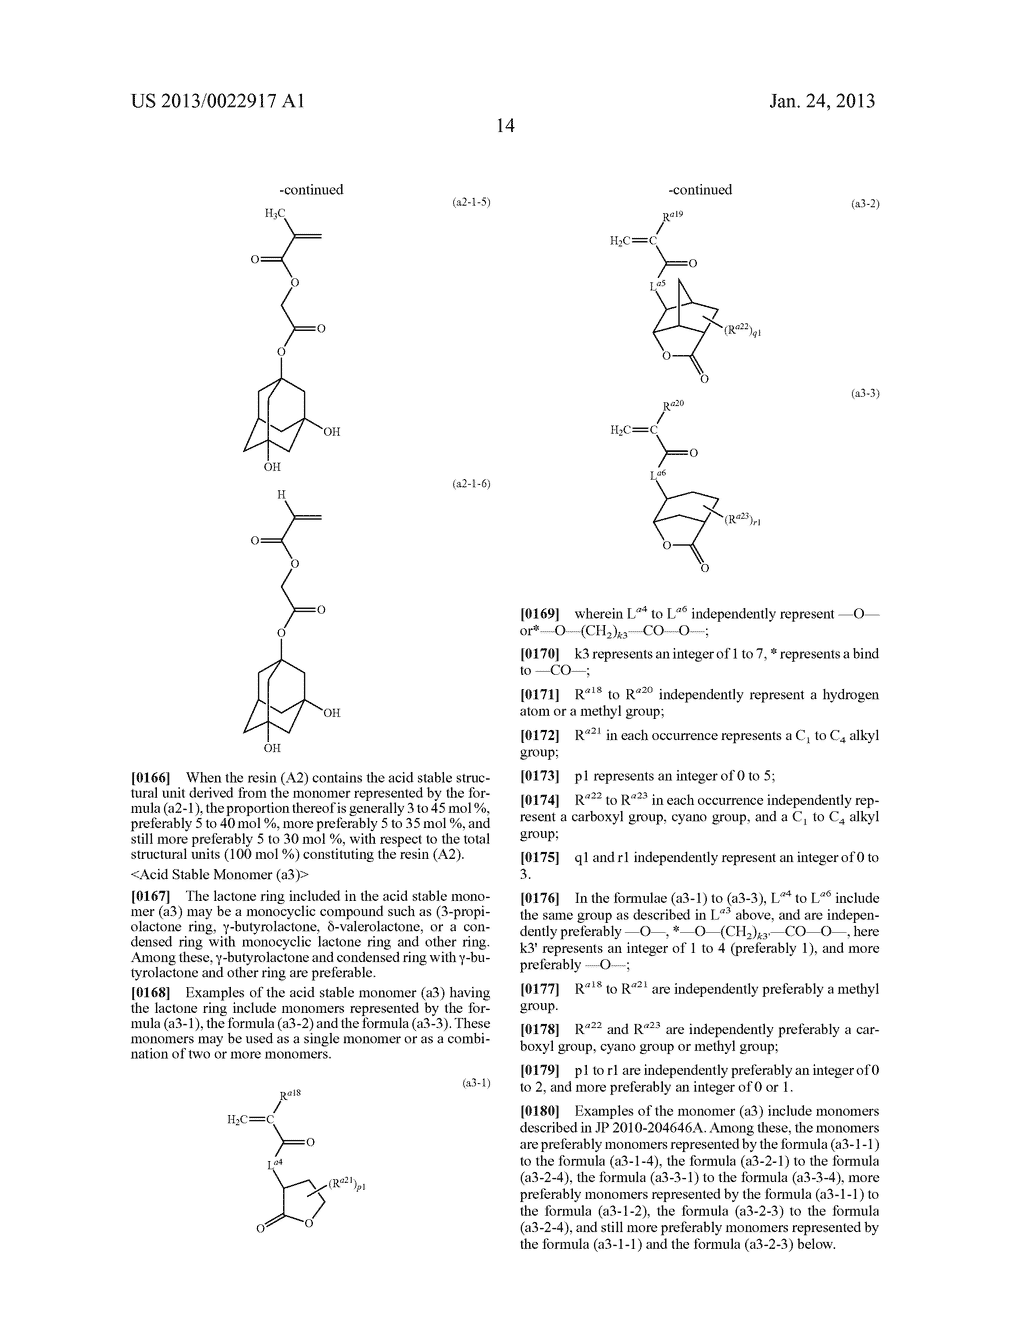 RESIST COMPOSITION AND METHOD FOR PRODUCING RESIST PATTERN - diagram, schematic, and image 15